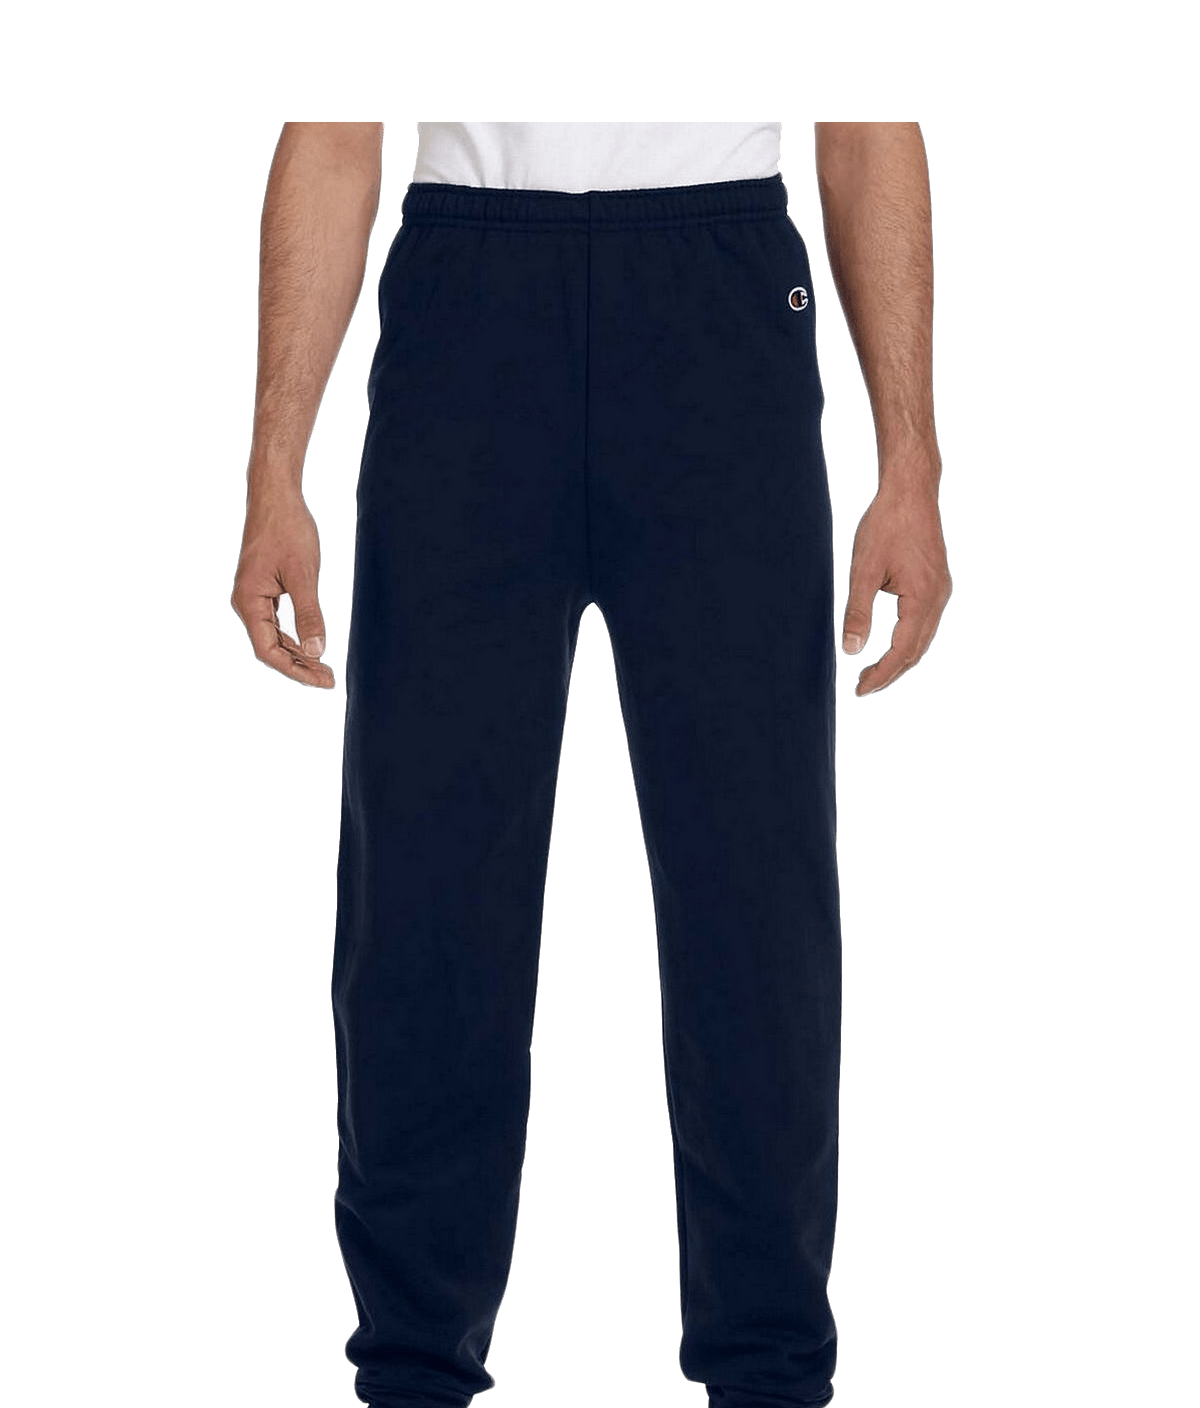 Champion P900 50/50 EcoSmart Sweatpants